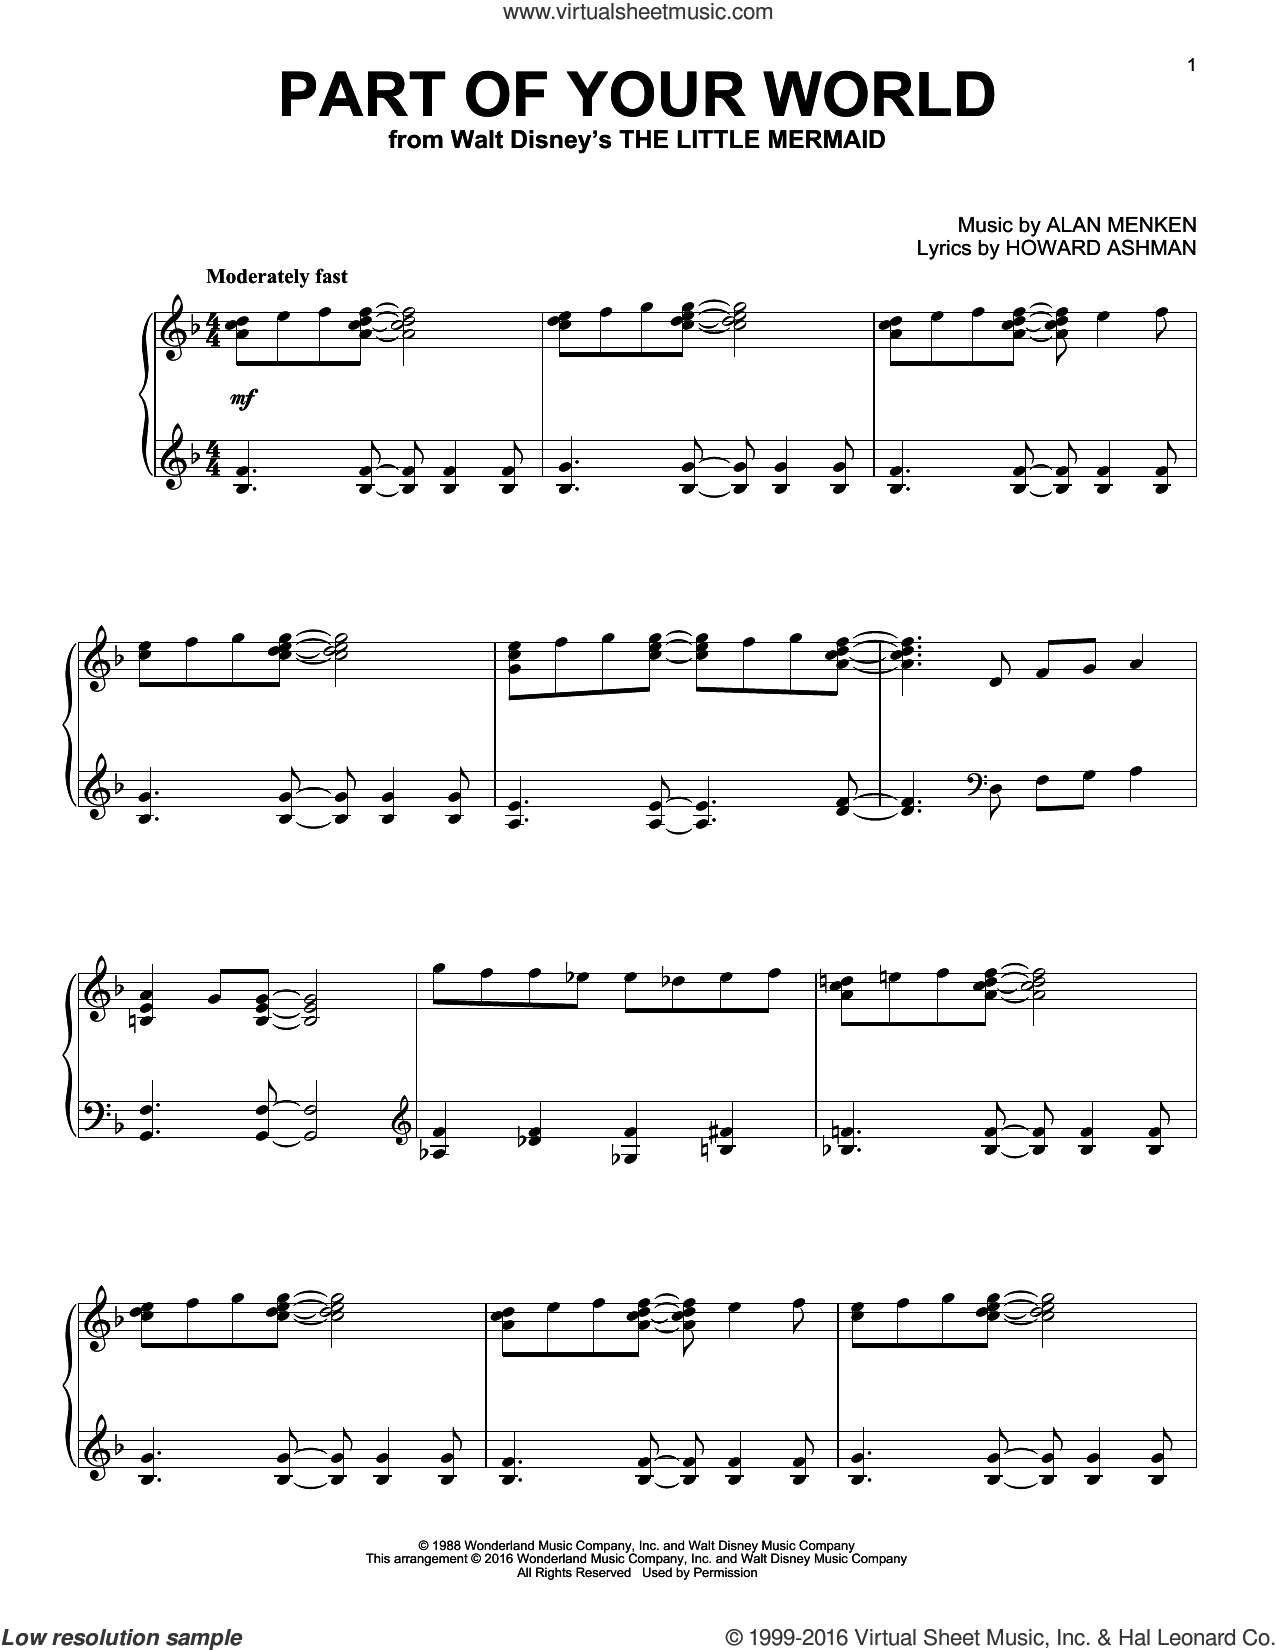 Part Of Your World [Jazz version] (from The Little Mermaid) sheet music for piano solo by Alan Menken and Howard Ashman, intermediate skill level